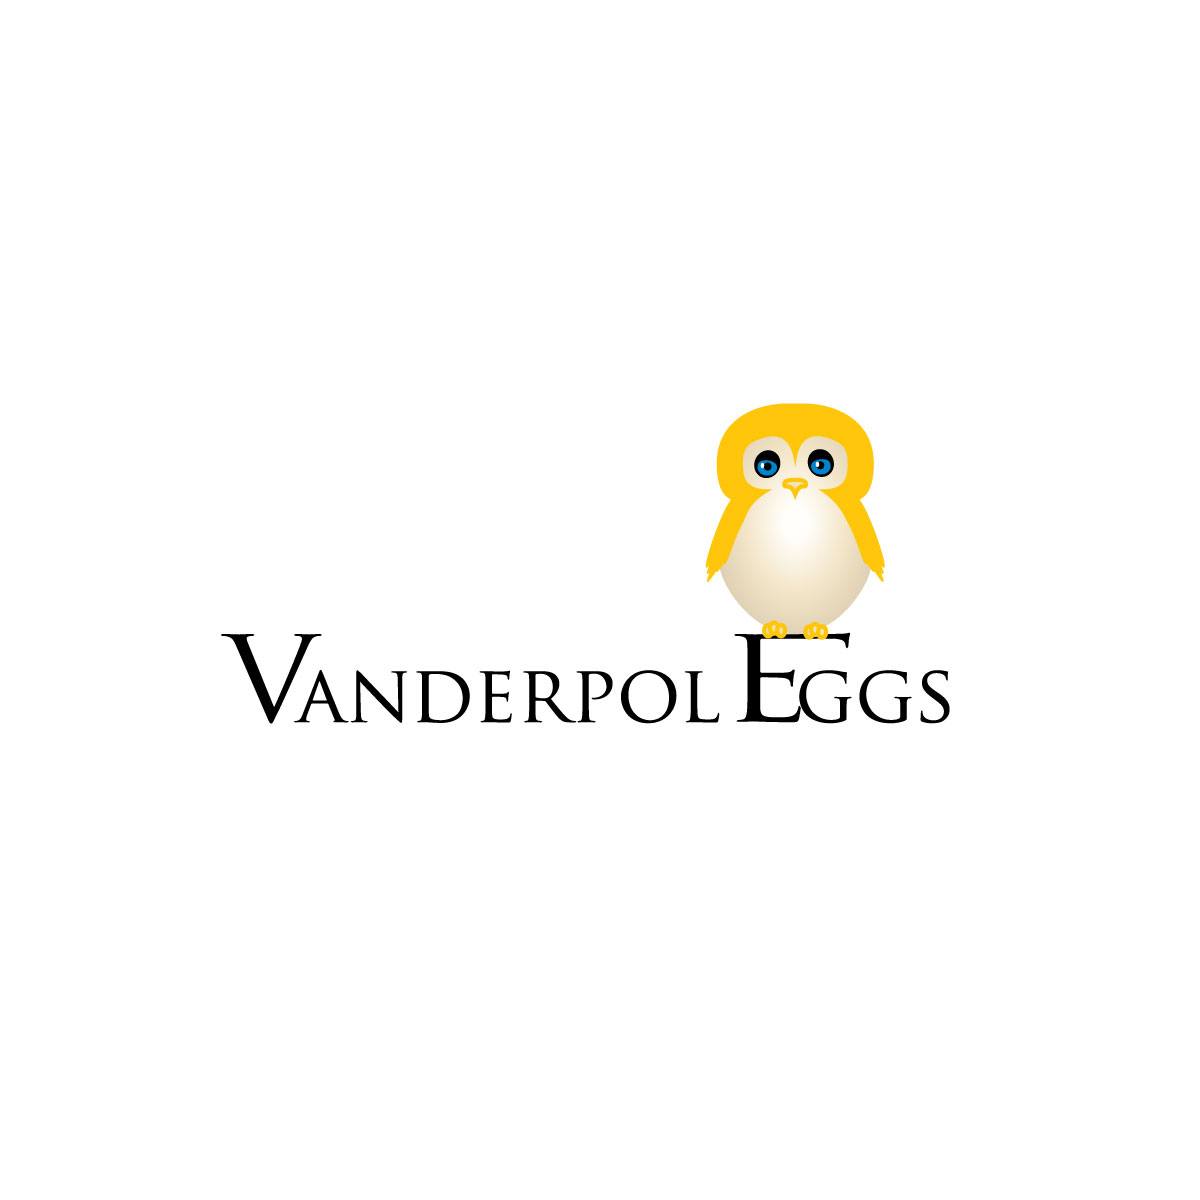 Logo Design by Deborah Wise - Entry No. 97 in the Logo Design Contest Creative Logo Design for Vanderpol Food Group.